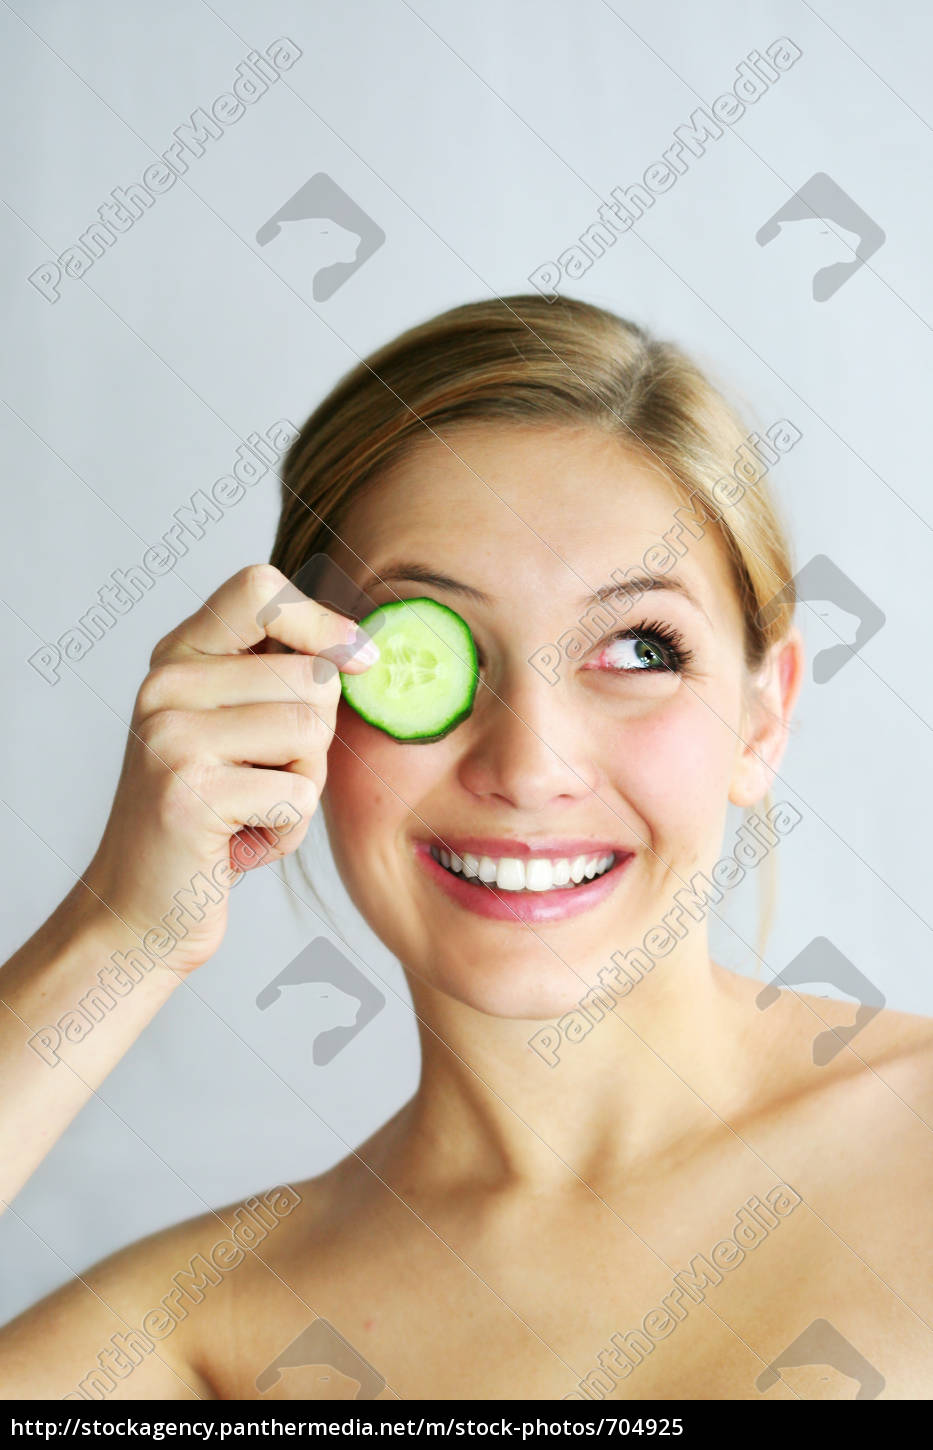 wellness, beauty, cucumber, mask - 704925